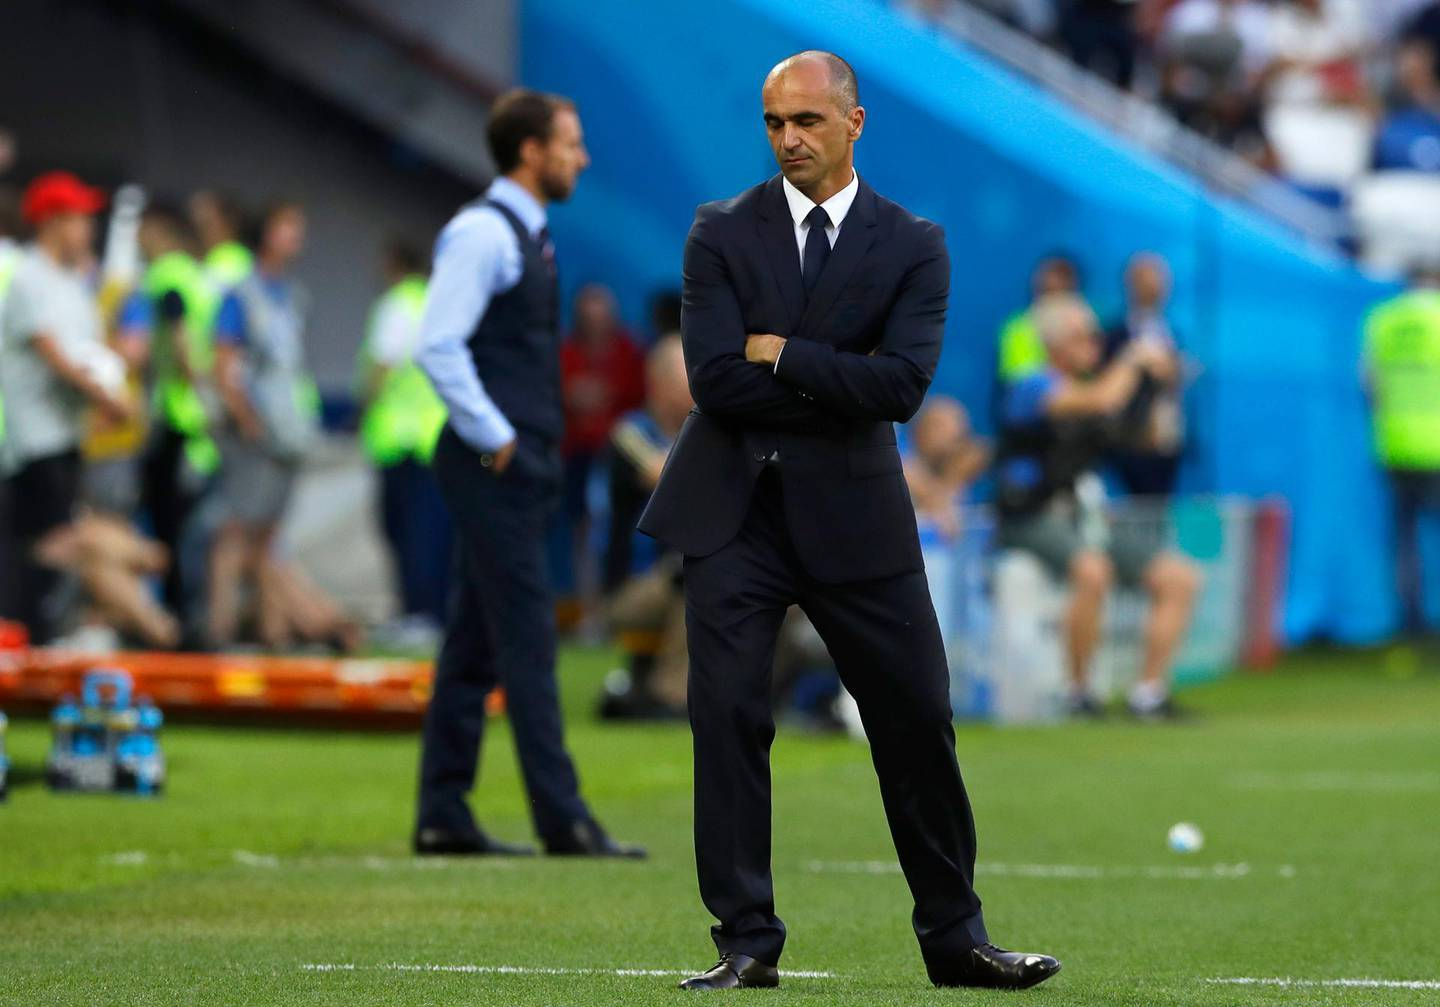 Belgium coach Roberto Martinez and England head coach Gareth Southgate, in the background, stand on the sideline during the group G match between England and Belgium at the 2018 soccer World Cup in the Kaliningrad Stadium in Kaliningrad, Russia, Thursday, June 28, 2018. (AP Photo/Alastair Grant)